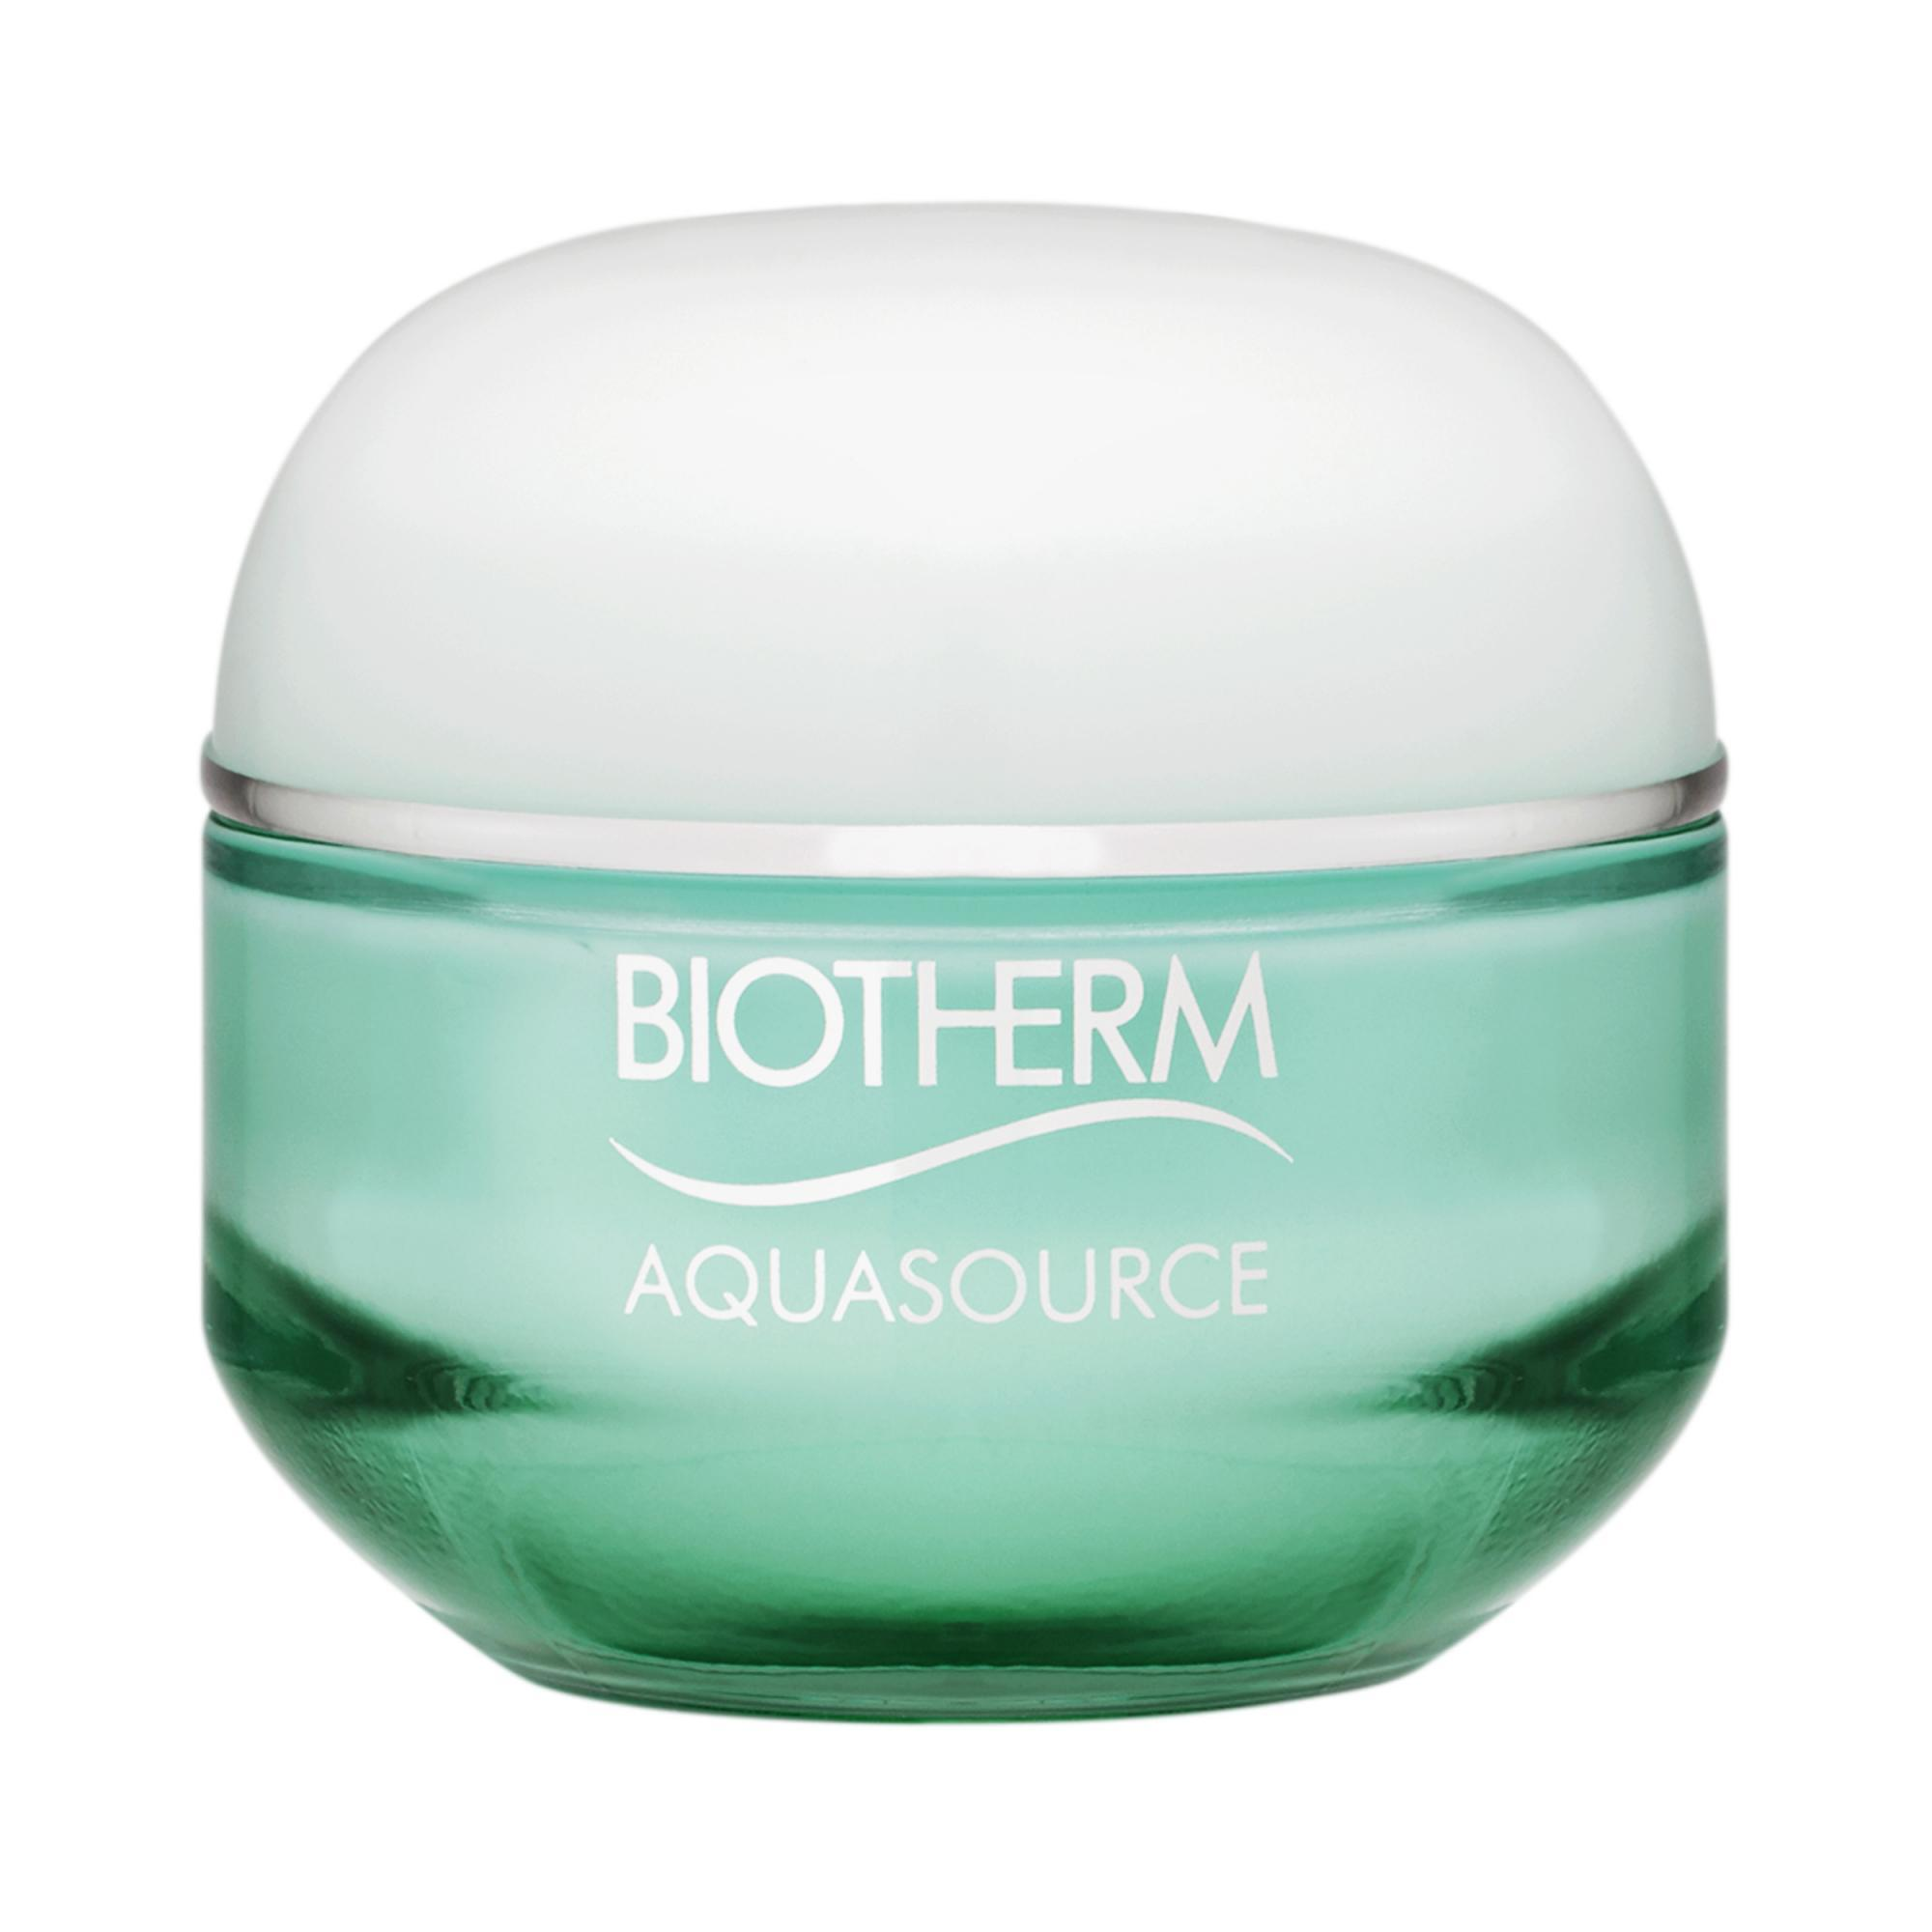 Biotherm Aquasource Gel 48H Continuous Release Hydration 50Ml 1 69Oz Intl Lower Price